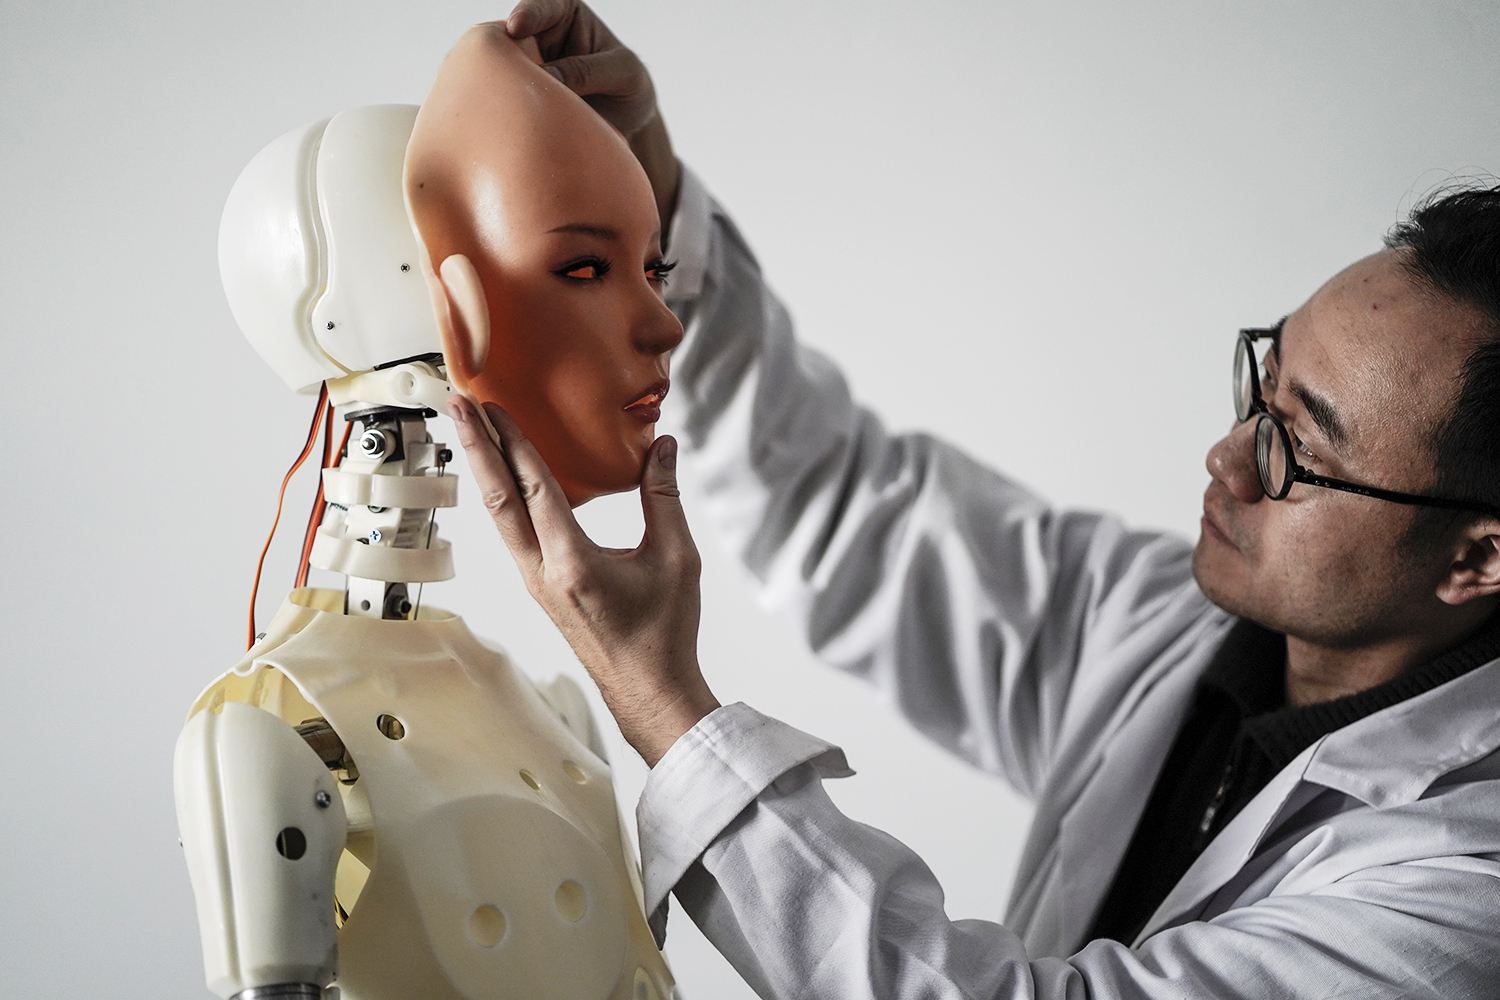 """This photo taken on February 1, 2018 shows an engineer holding a silicon face against the head of a robot at a lab of a doll factory of EXDOLL, a firm based in the northeastern Chinese port city of Dalian. With China facing a massive gender gap and a greying population, a company wants to hook up lonely men and retirees with a new kind of companion: """"Smart"""" sex dolls that can talk, play music and turn on dishwashers. / AFP PHOTO / FRED DUFOUR / TO GO WITH China-sex-lifestyle, FOCUS by Joanna CHIU"""